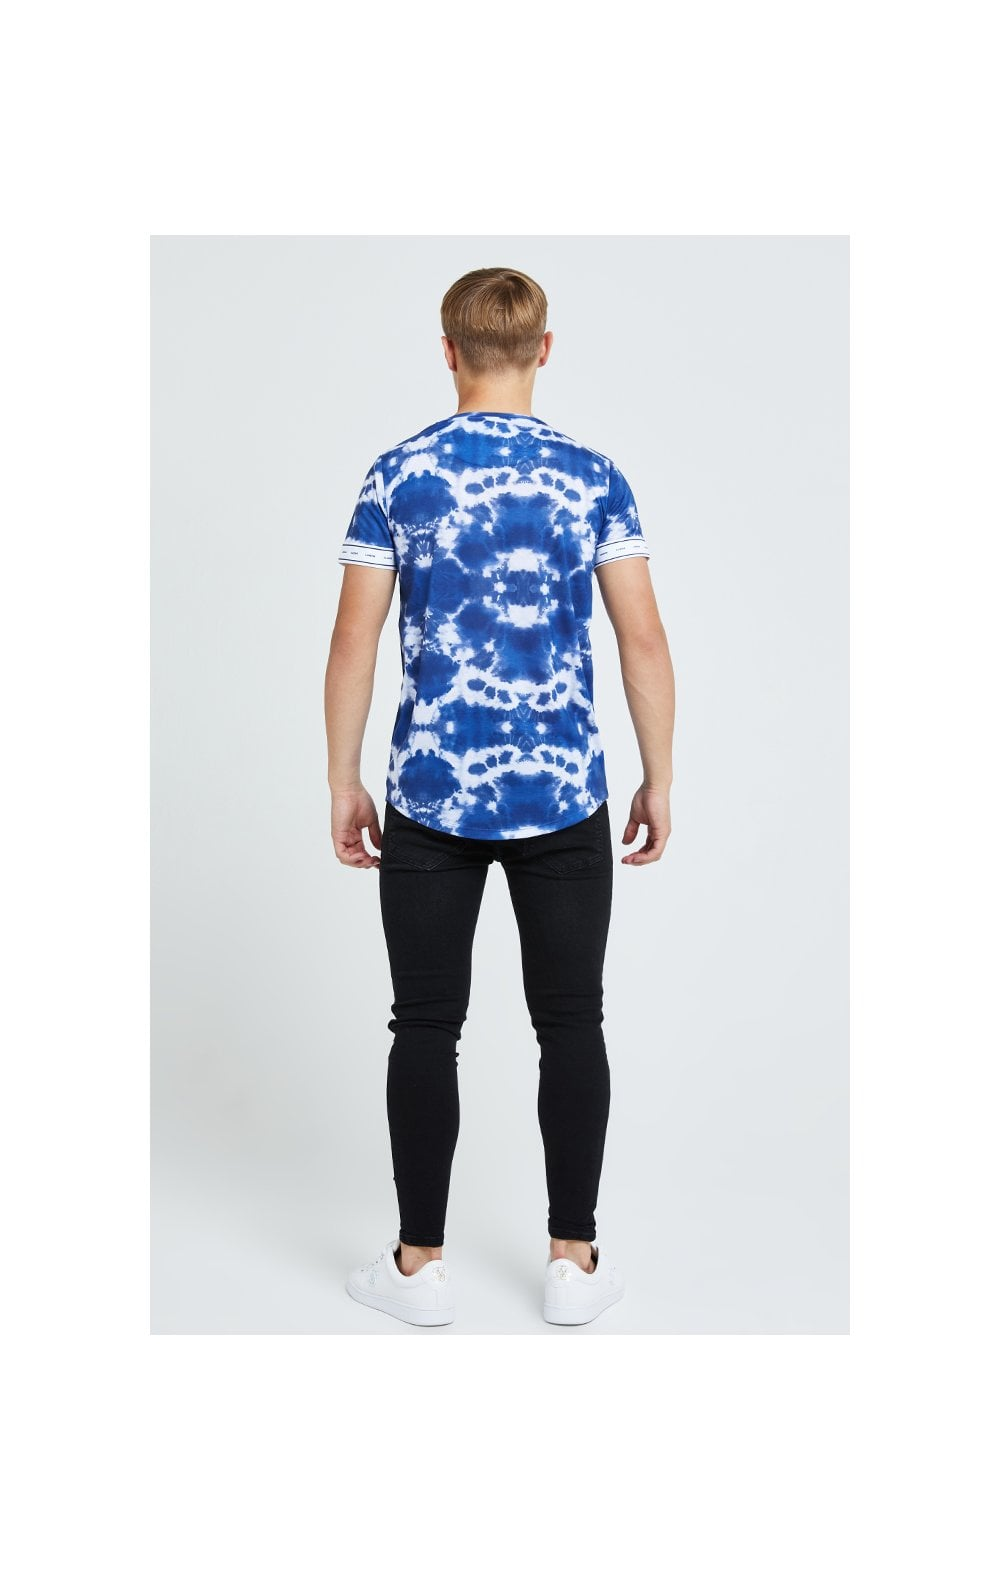 Load image into Gallery viewer, Illusive London Tie Dye Print Tech Tee - Blue & White (4)